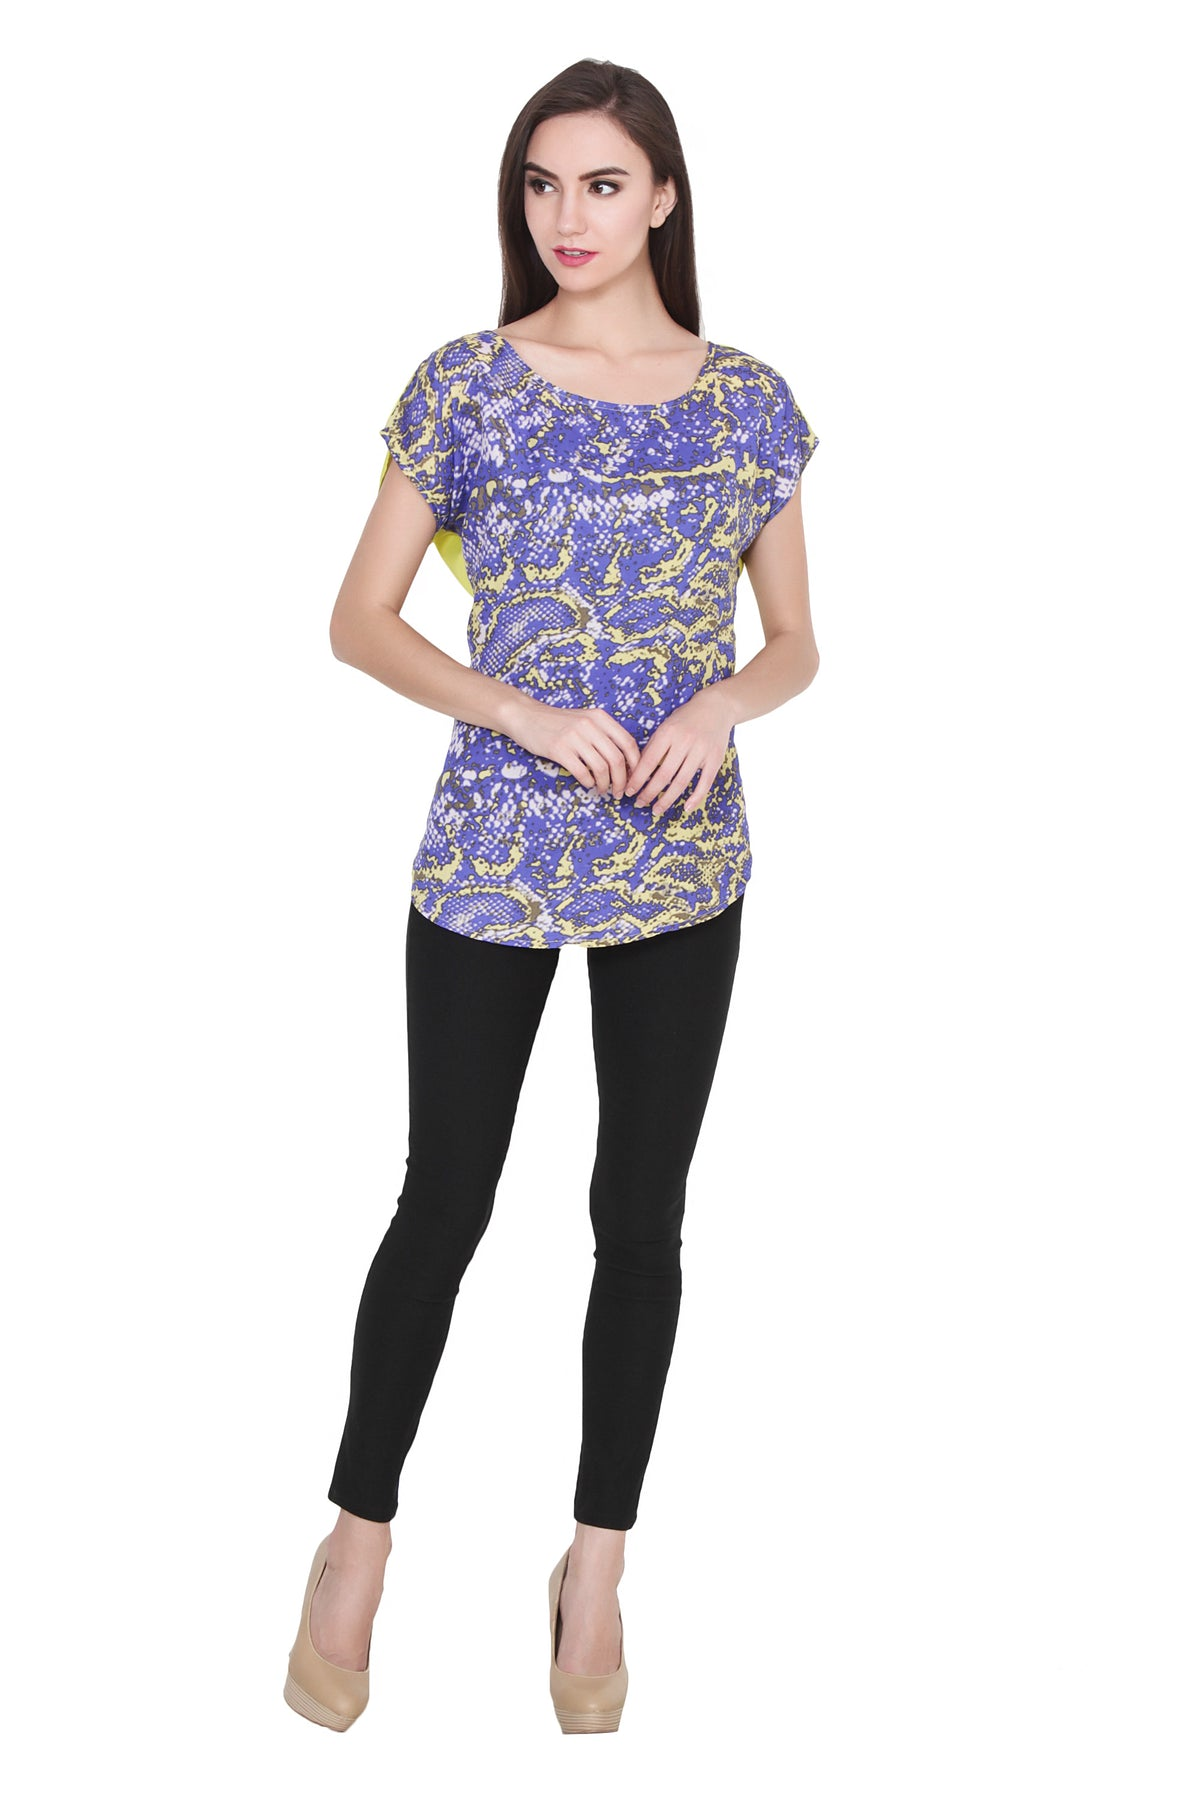 Molecular Structure Printed Top